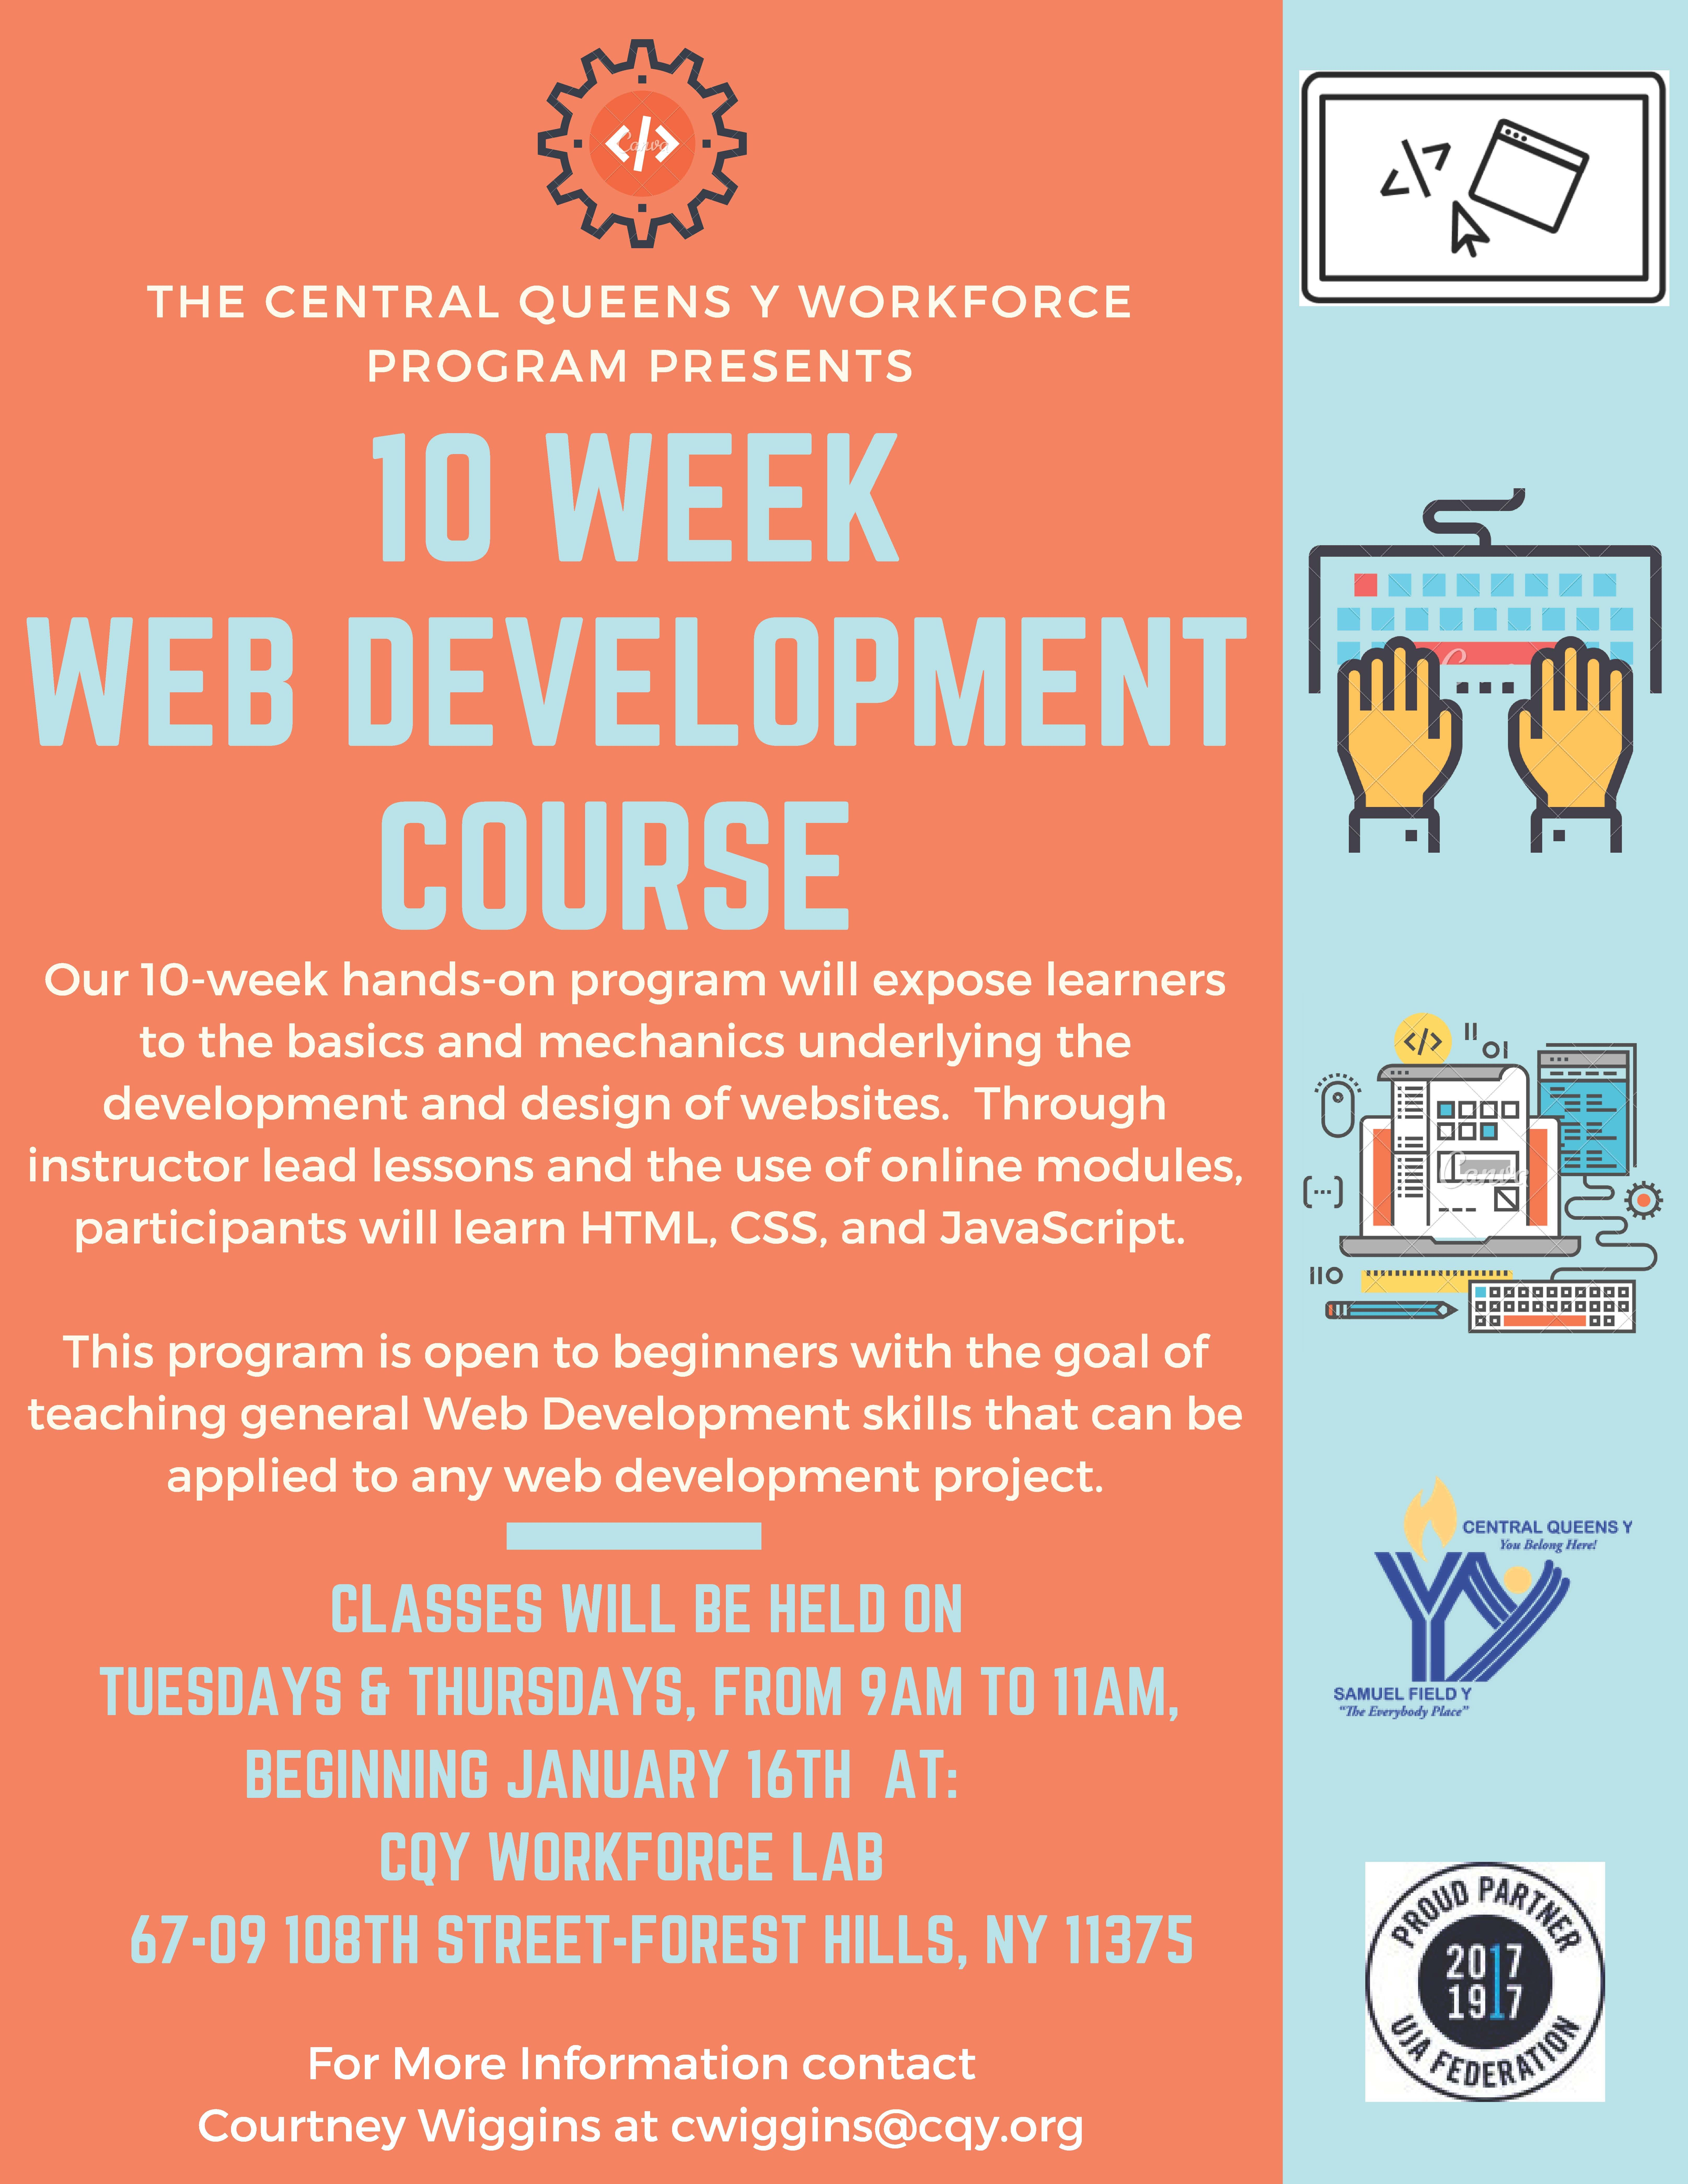 Free Coding Course At Central Queens Y Qns Com Free Coding Courses Coding Courses Web Development Course